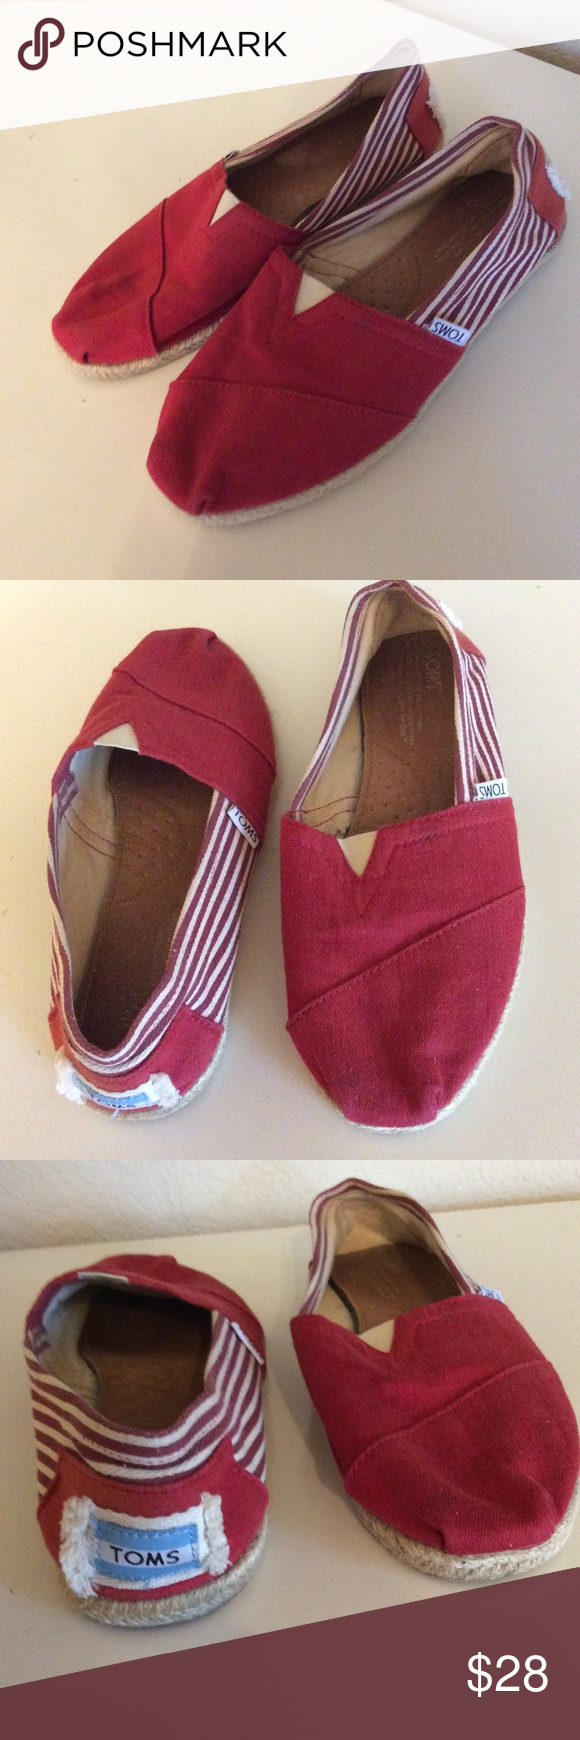 TOMS Womens Red Canvas Slip on Shoes